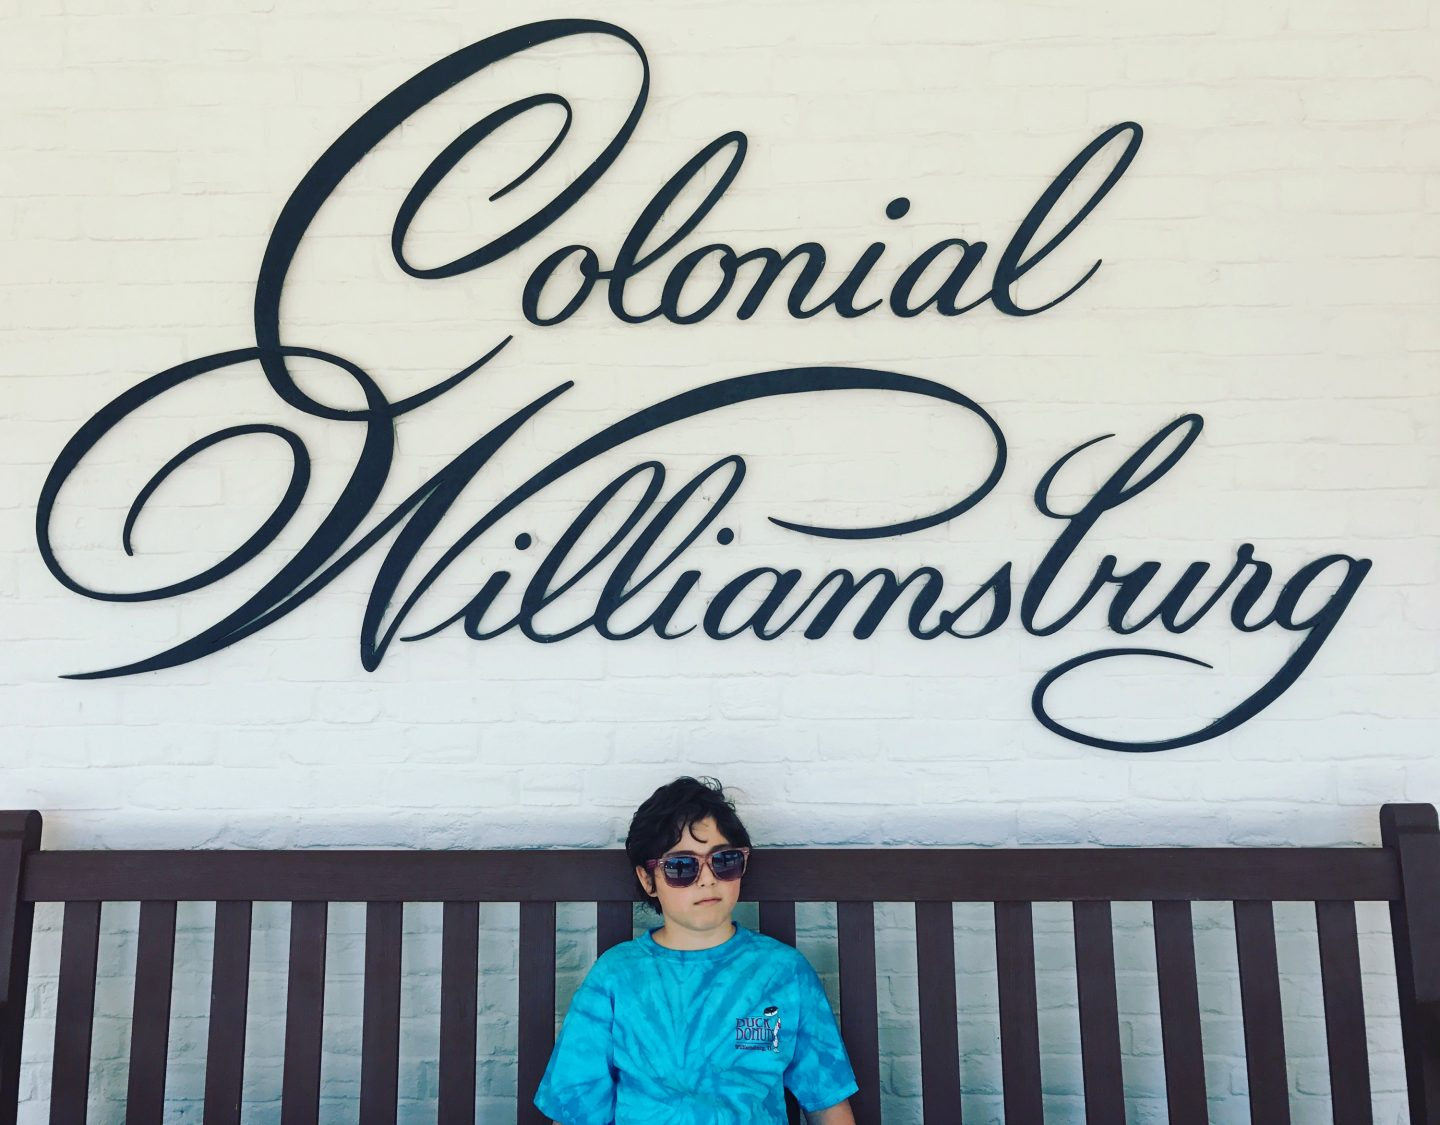 Our Weekend in Williamsburg, VA